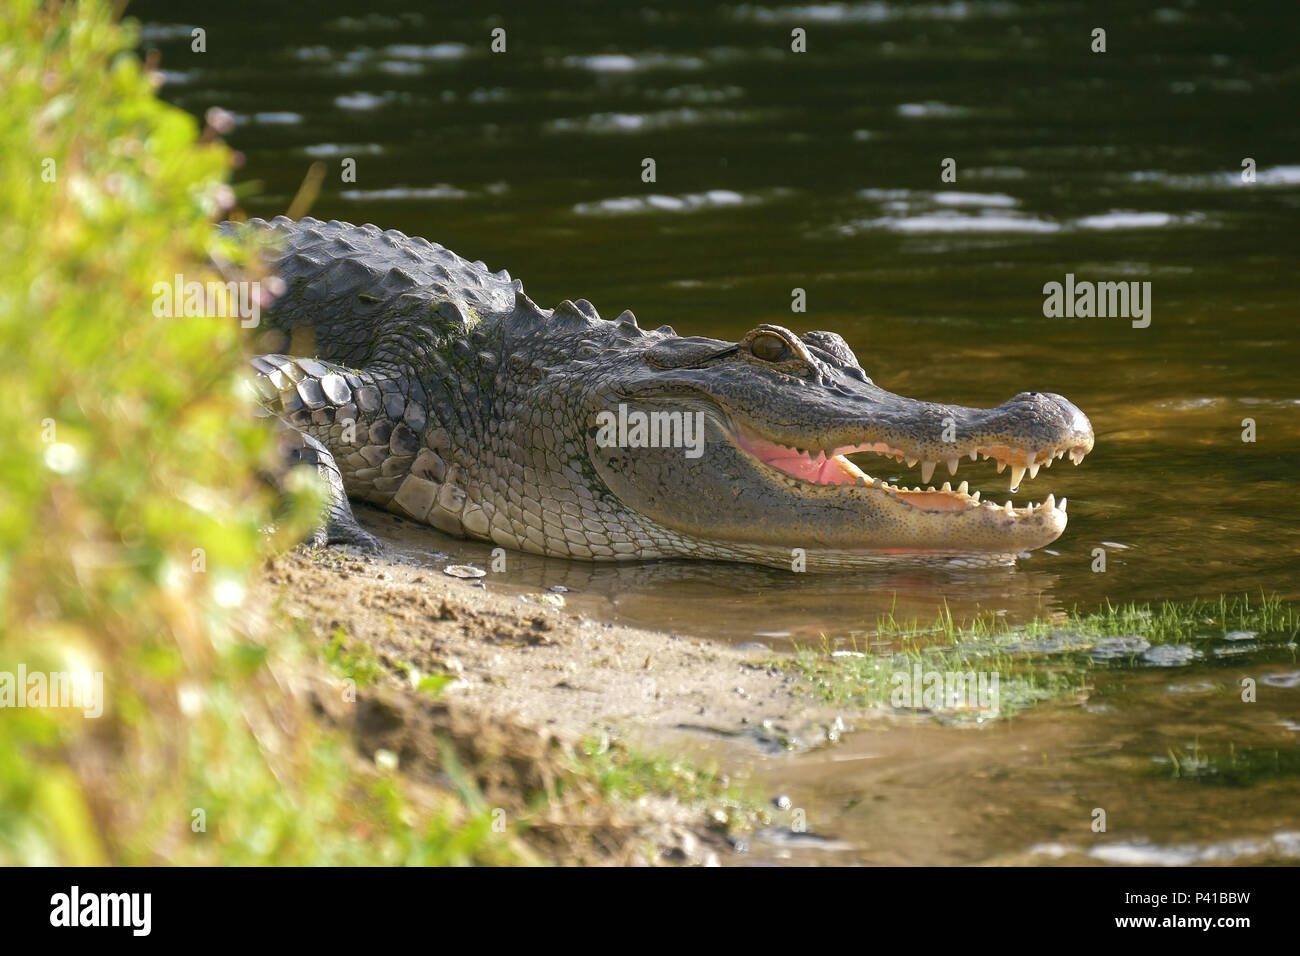 Alligator laying near a pond with its mouth open. - Stock Image